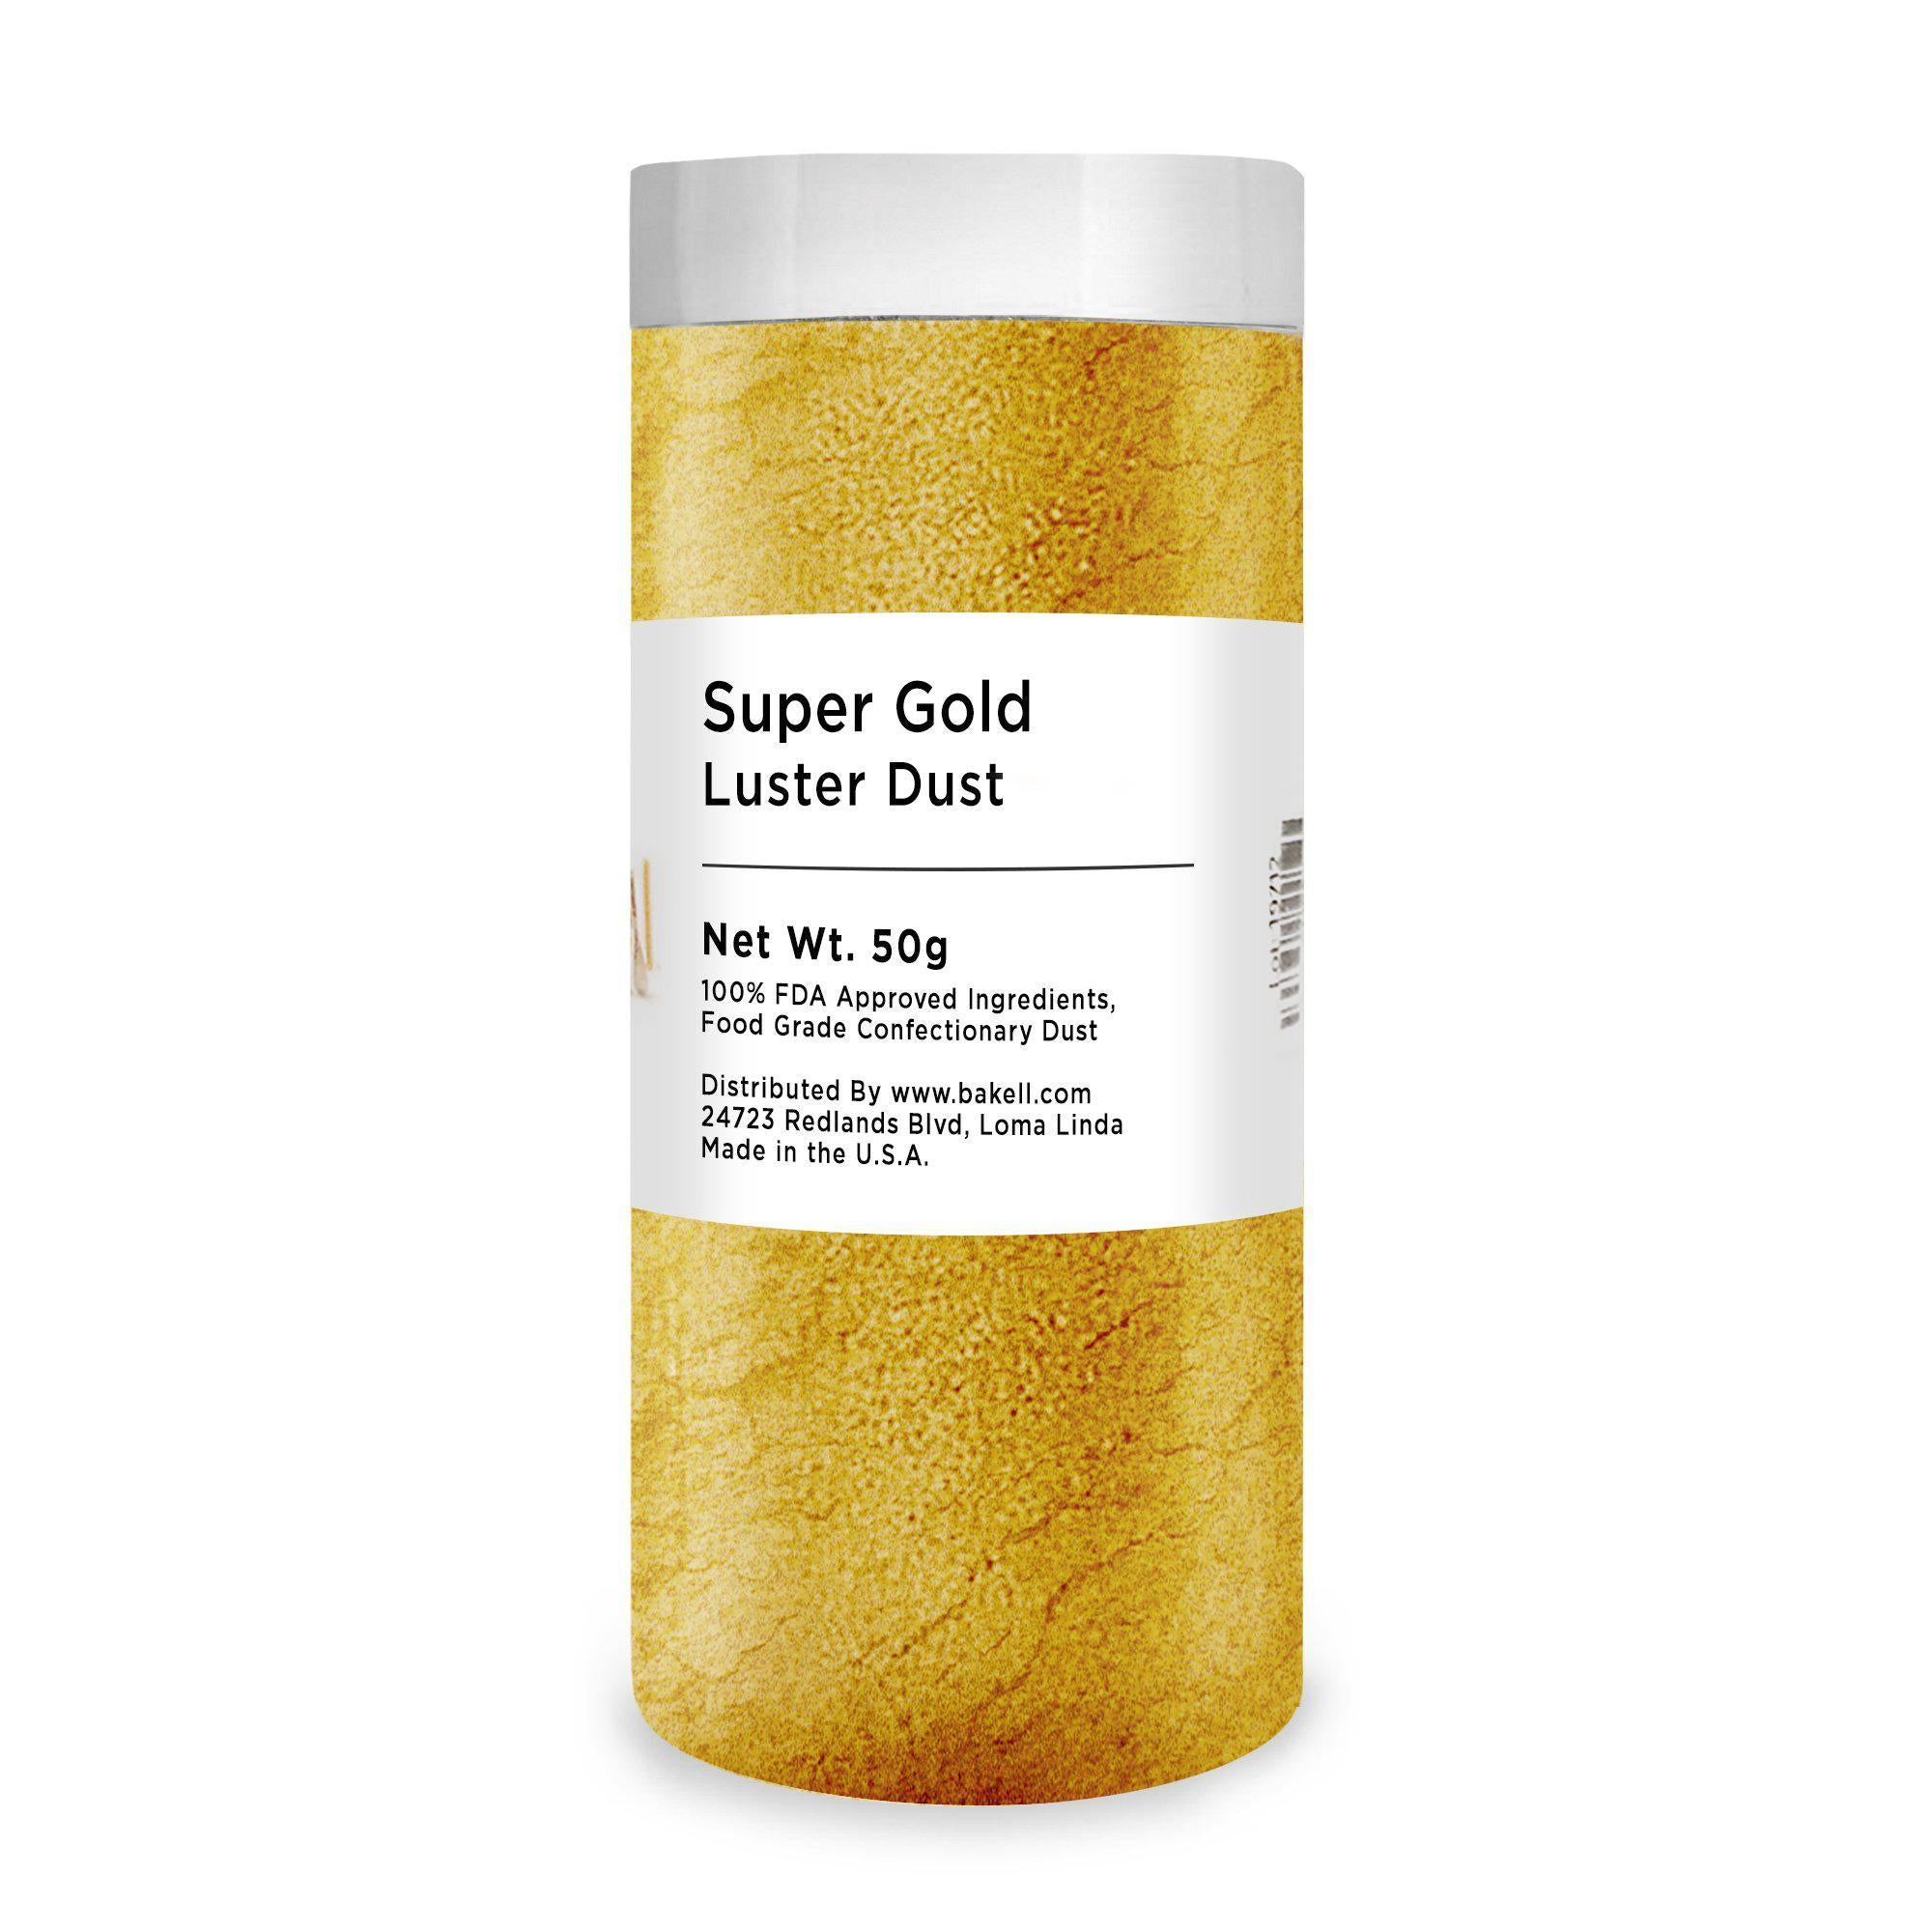 Super Gold Edible Luster Dust & Edible Paint | FDA Approved Metallic Edible Glitter | FDA Compliant edible glitter & edible dust | Kosher Certified Glitter | Bakell.com